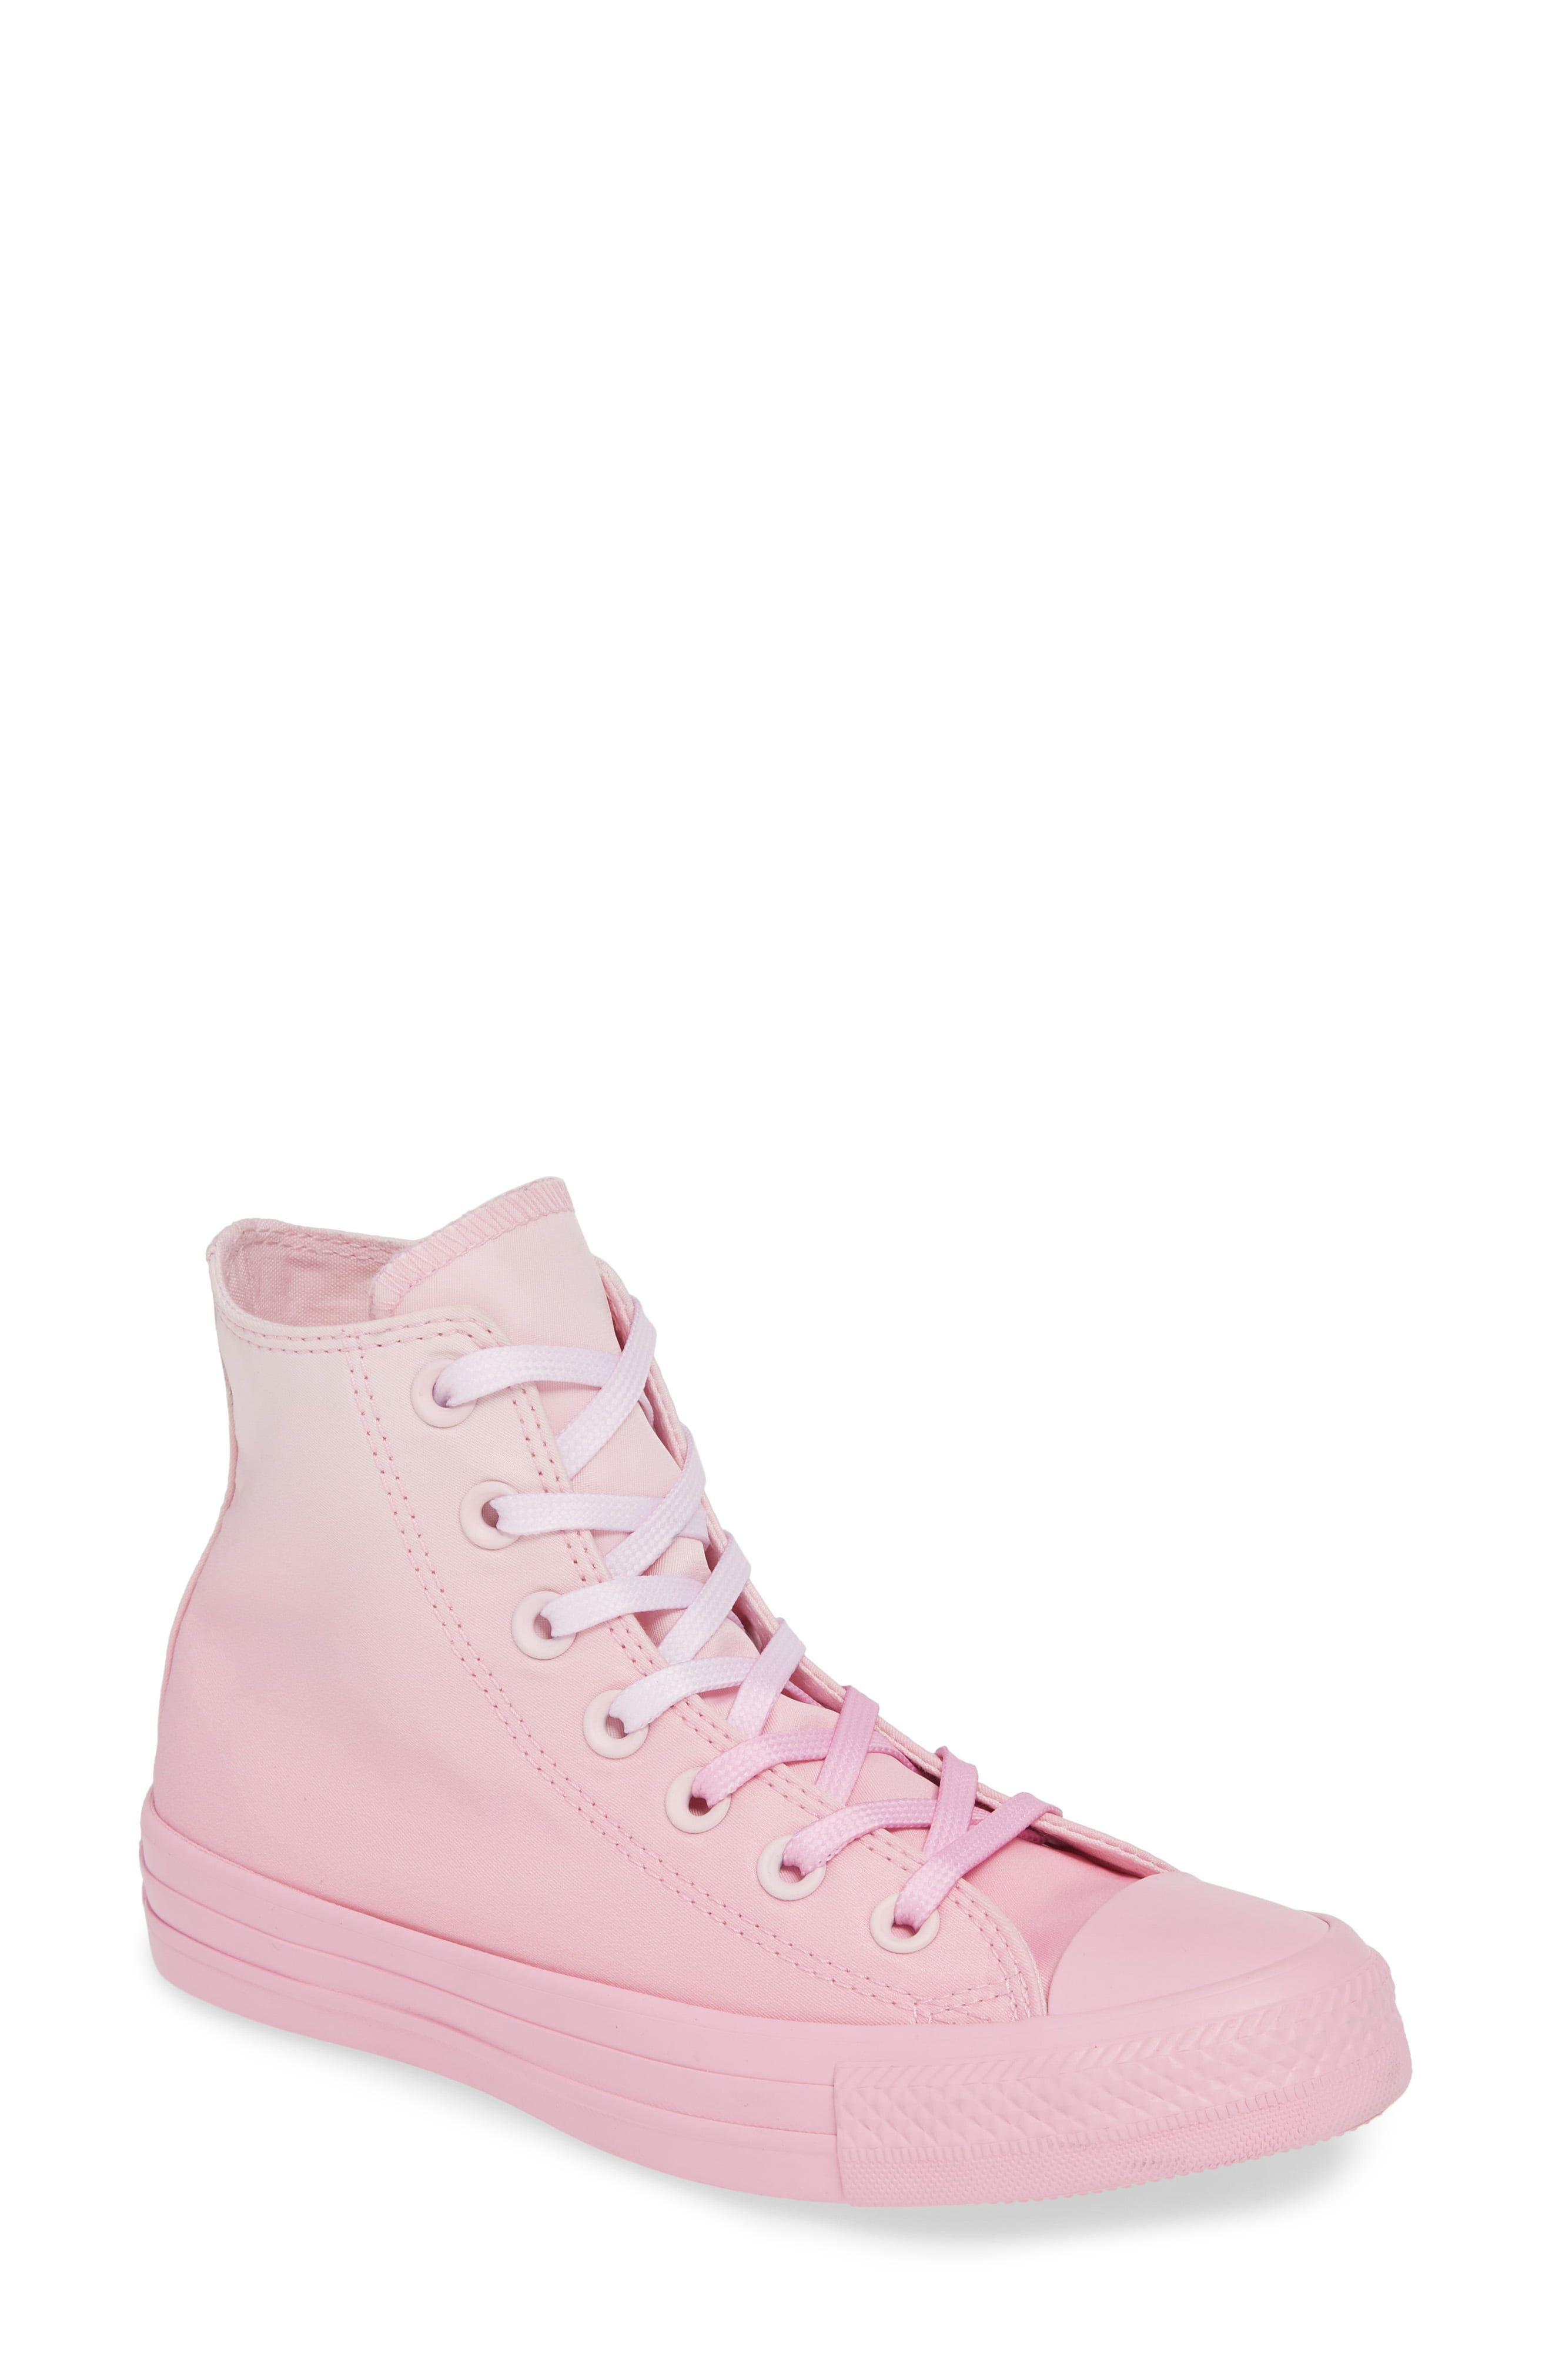 Converse Chuck Taylor All Star Lo Hello Kitty (9 Women 7